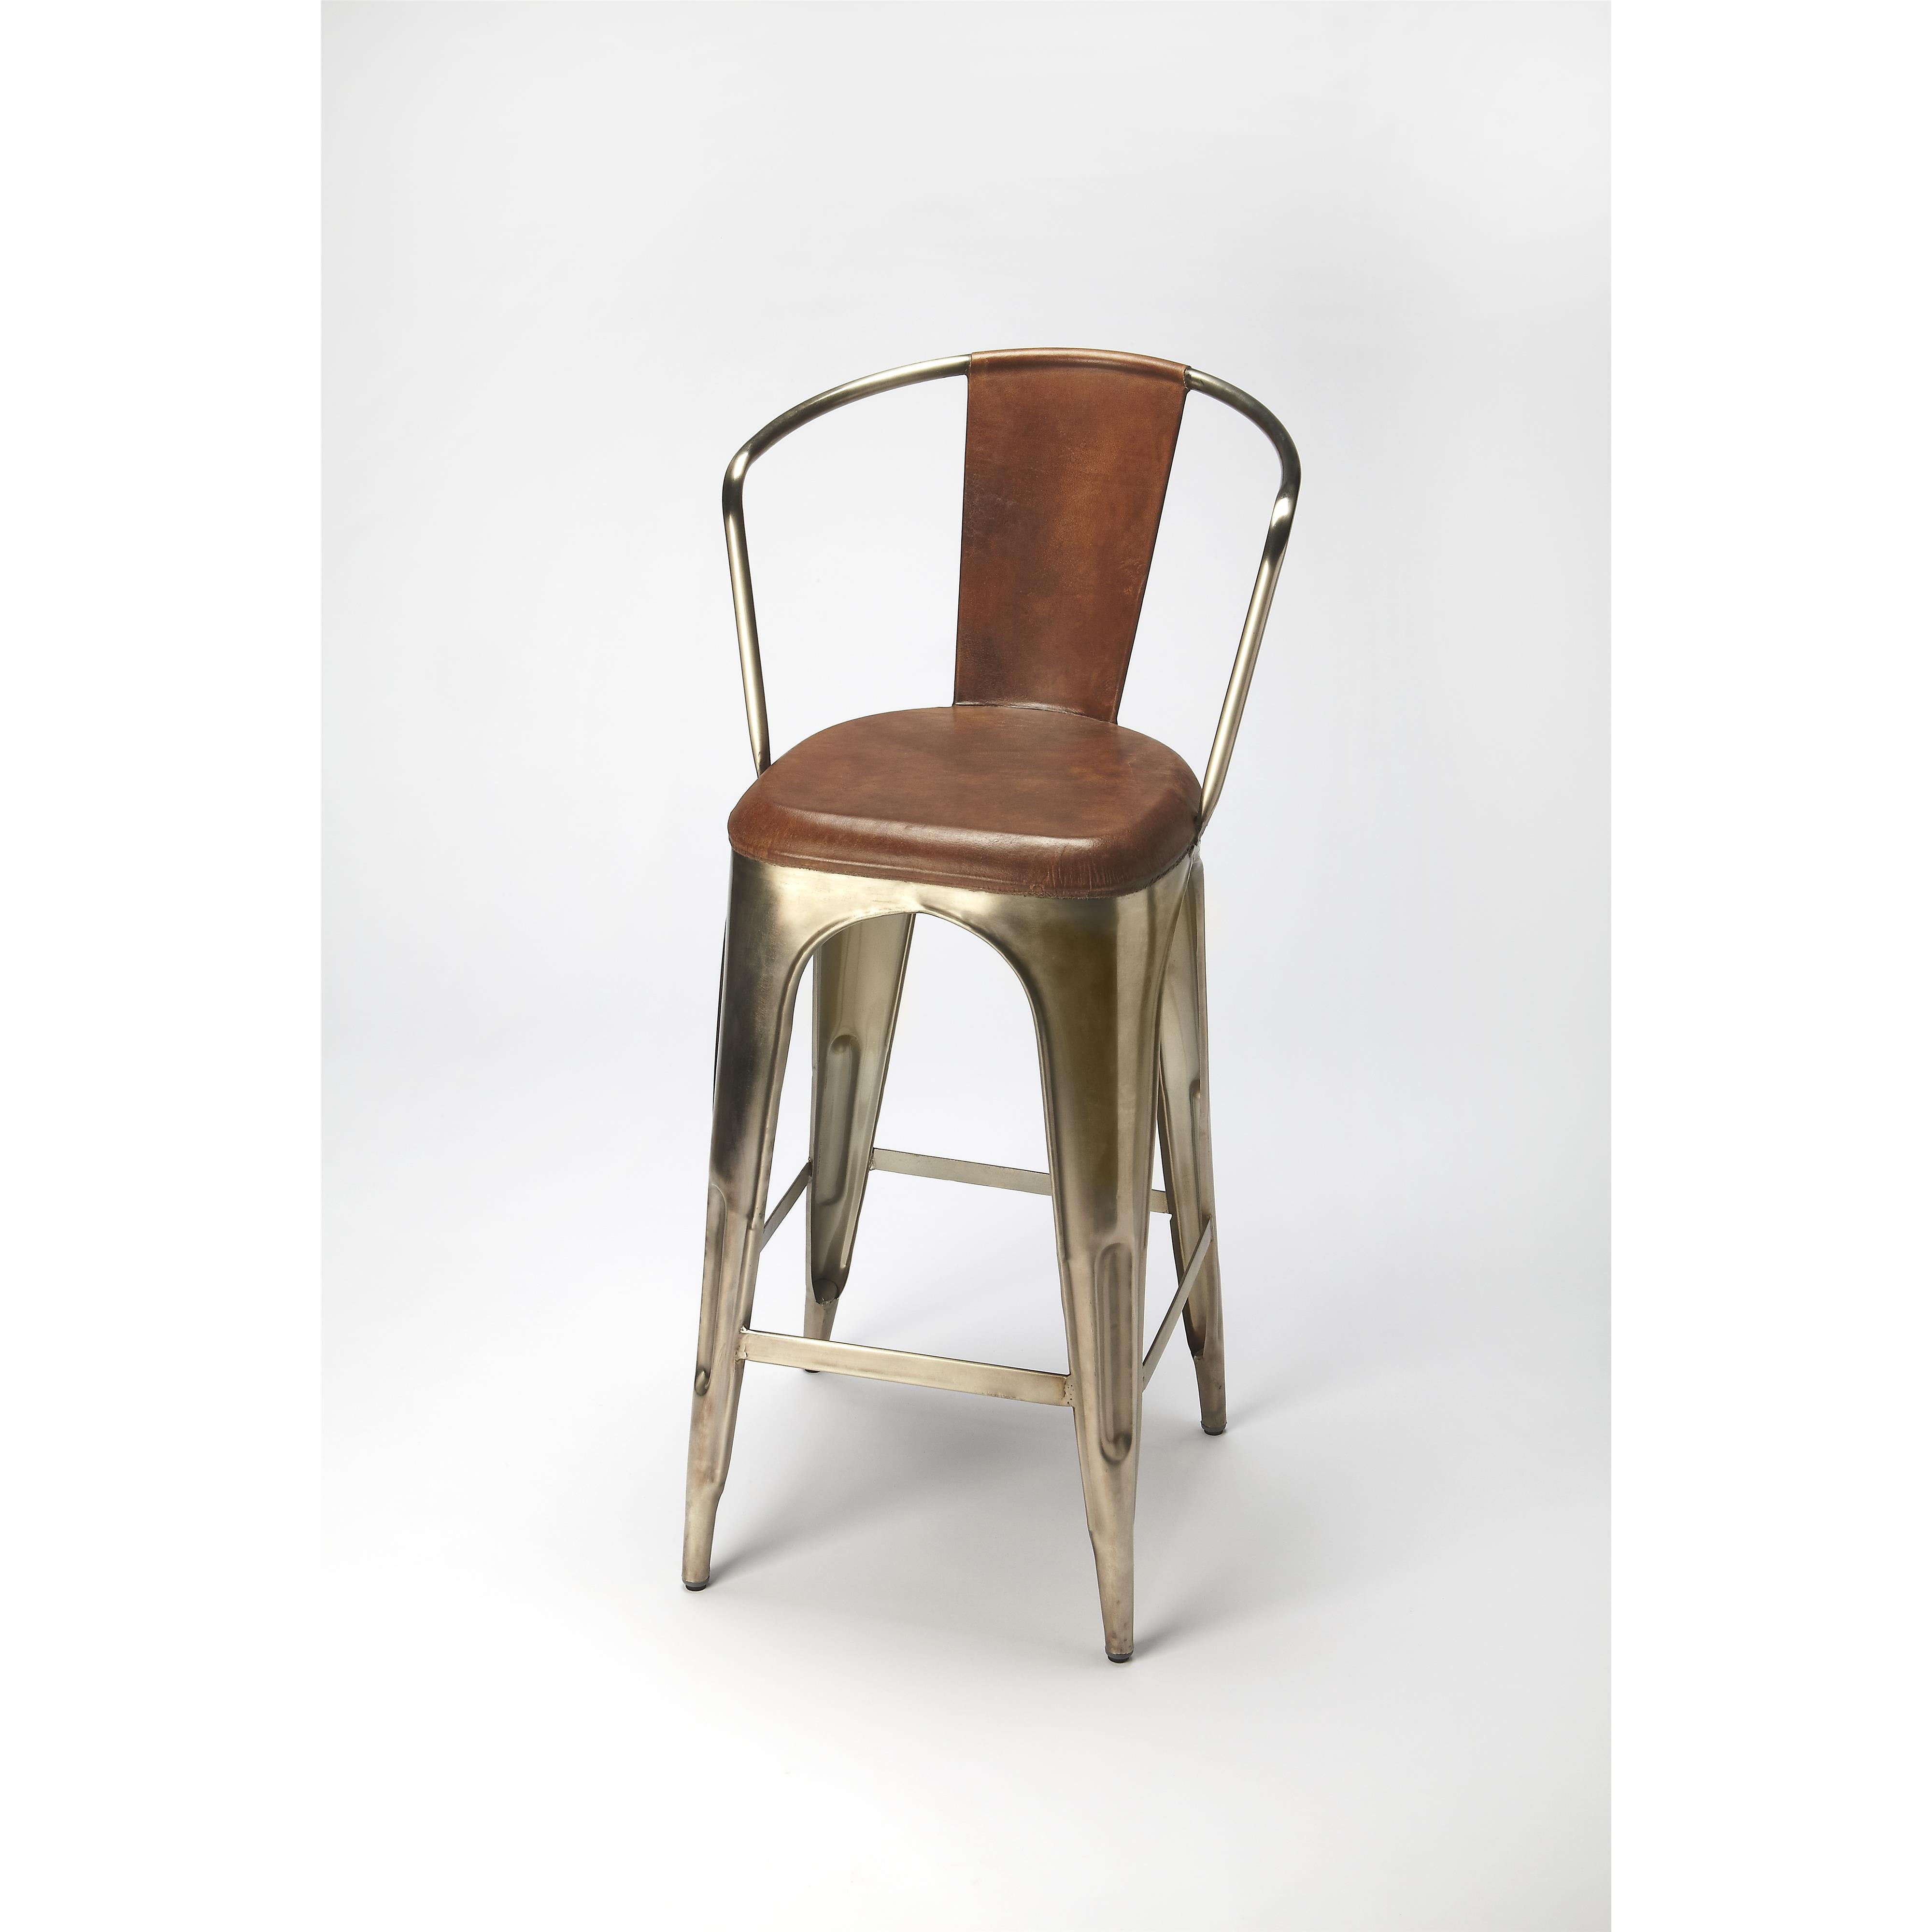 Butler Specialty Company Industrial Chic Barstool - Item Number: 6130344